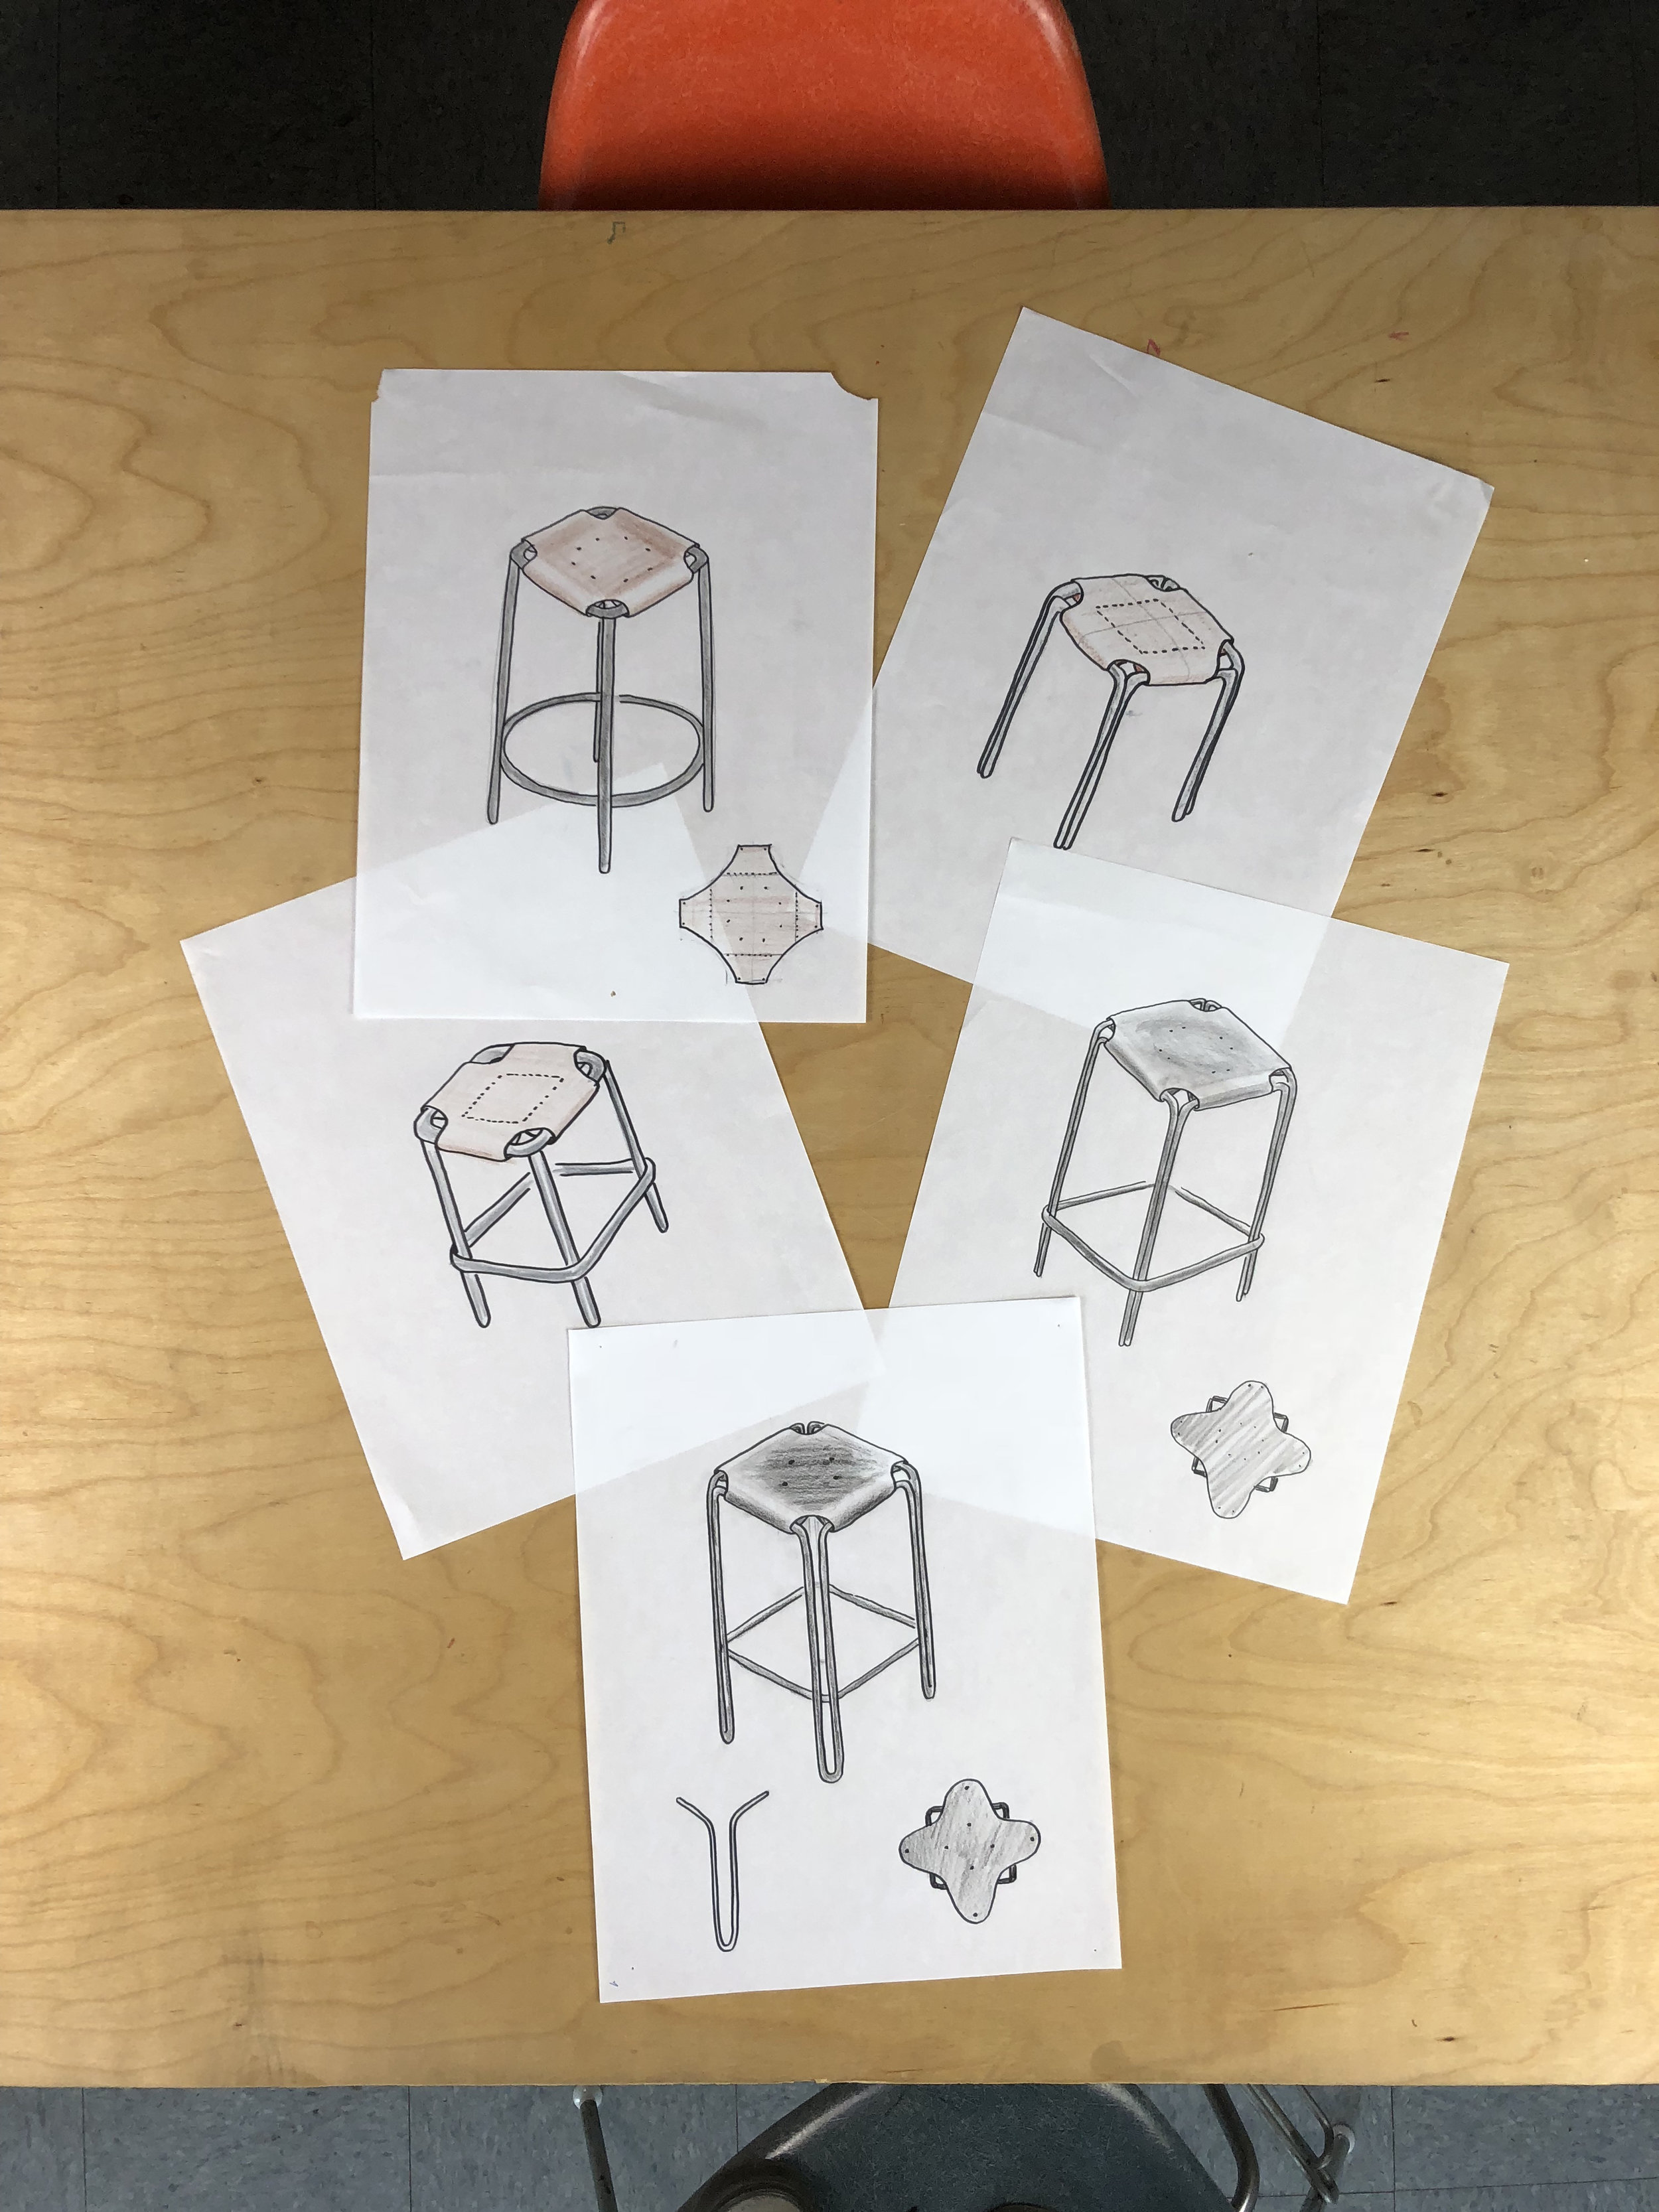 """- Stool Nº1 started as an exploration in bent wire stool construction—in these early sketches designer Craighton Bermanwas playing with different tubing forms for the frame, as well as various seating materials—including a leather sling. The bottom 'hairpin leg"""" concept was a breakthrough, as it allowed for a thinner gauge wire to be used. This meant the design could be visually light while still maintaining strength."""